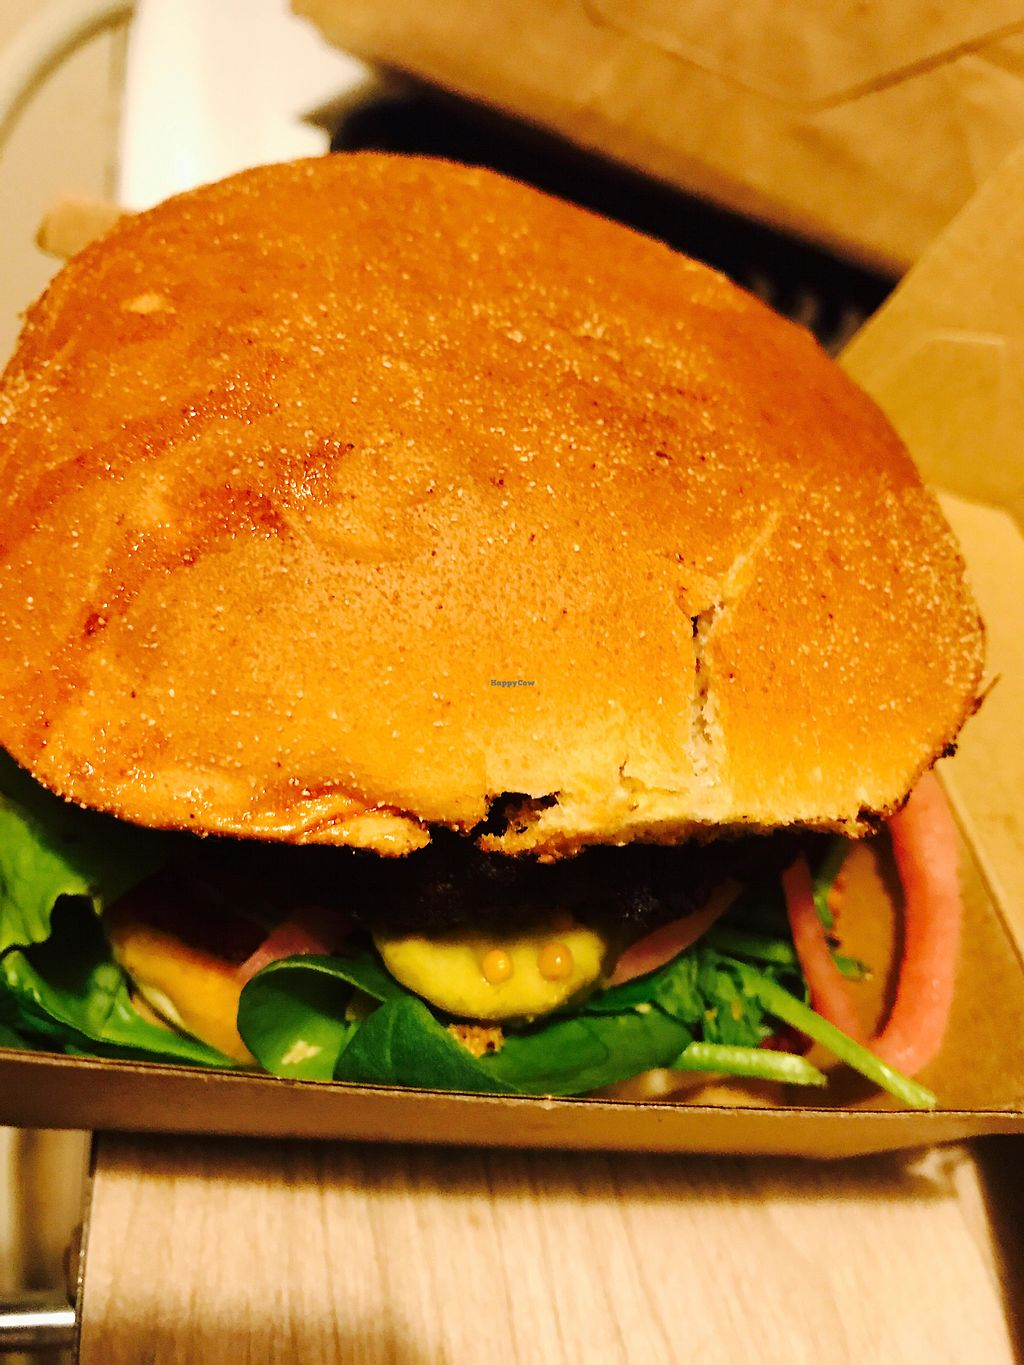 """Photo of Bake and Burger  by <a href=""""/members/profile/NirvanaRoseWilliams"""">NirvanaRoseWilliams</a> <br/>Pumpkin chickpea burger <br/> August 5, 2017  - <a href='/contact/abuse/image/93741/289109'>Report</a>"""